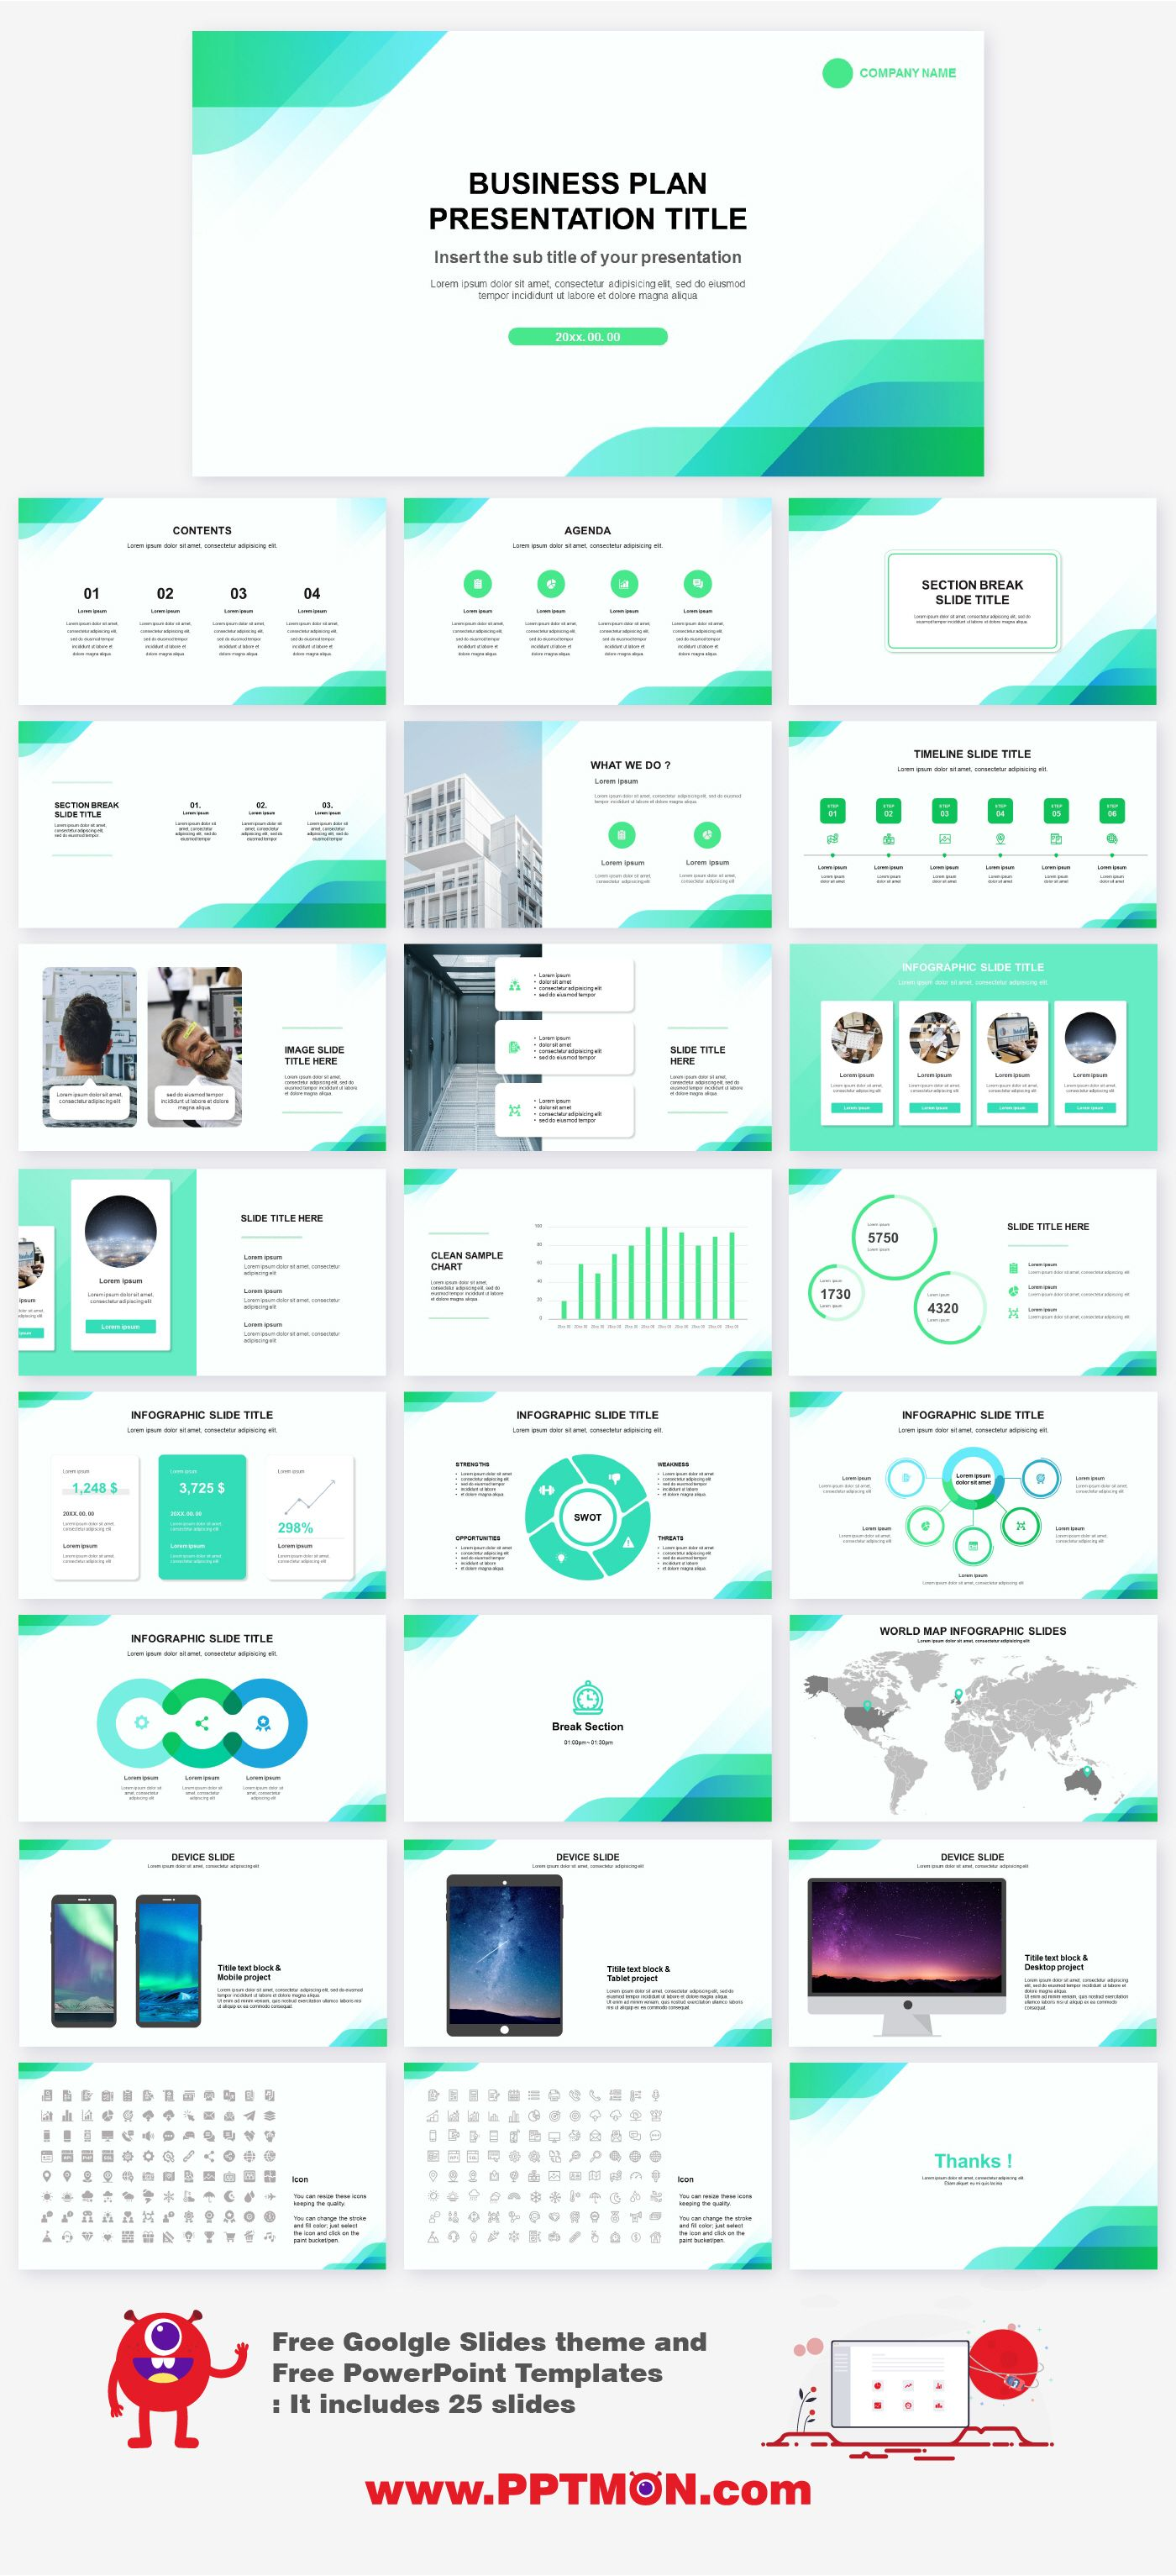 Business Plan Free Powerpoint Ppt Template Google Presentation Theme Business Plan Presentation Powerpoint Design Templates Powerpoint Presentation Design